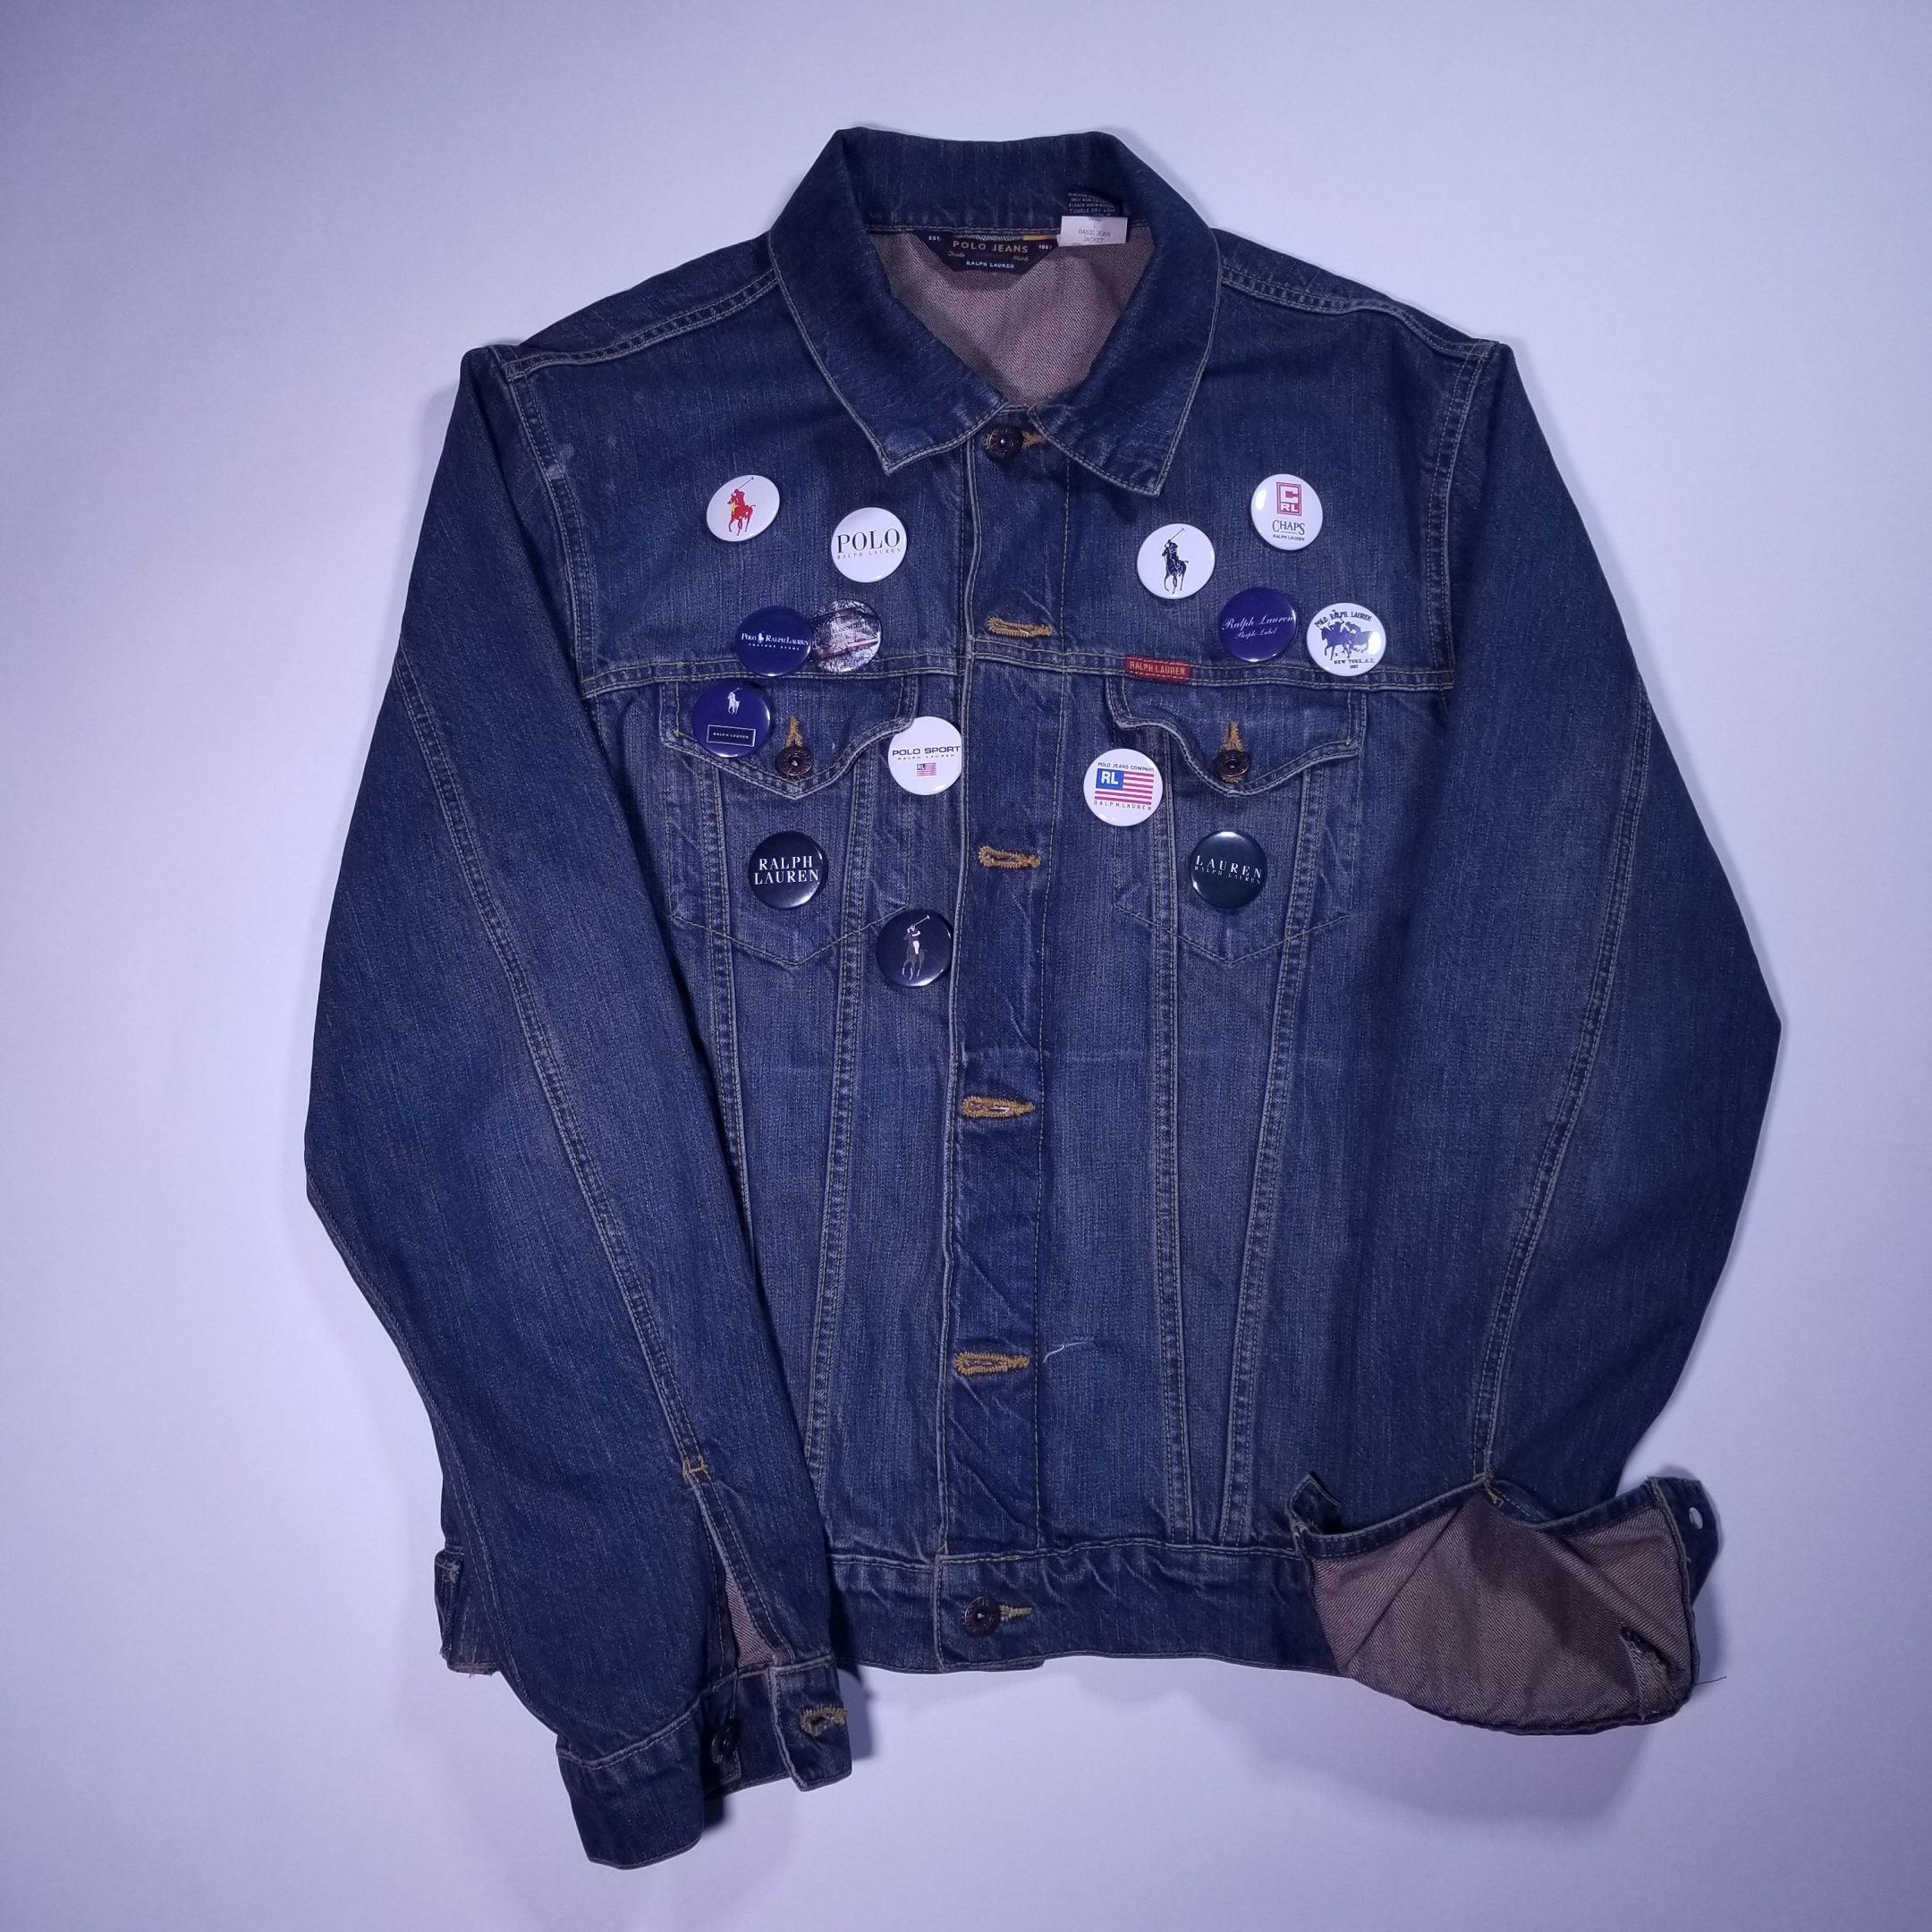 Jean Jacket Jeans Exclusive Polo Vintage Ralph With Lauren 6gYI7vybf